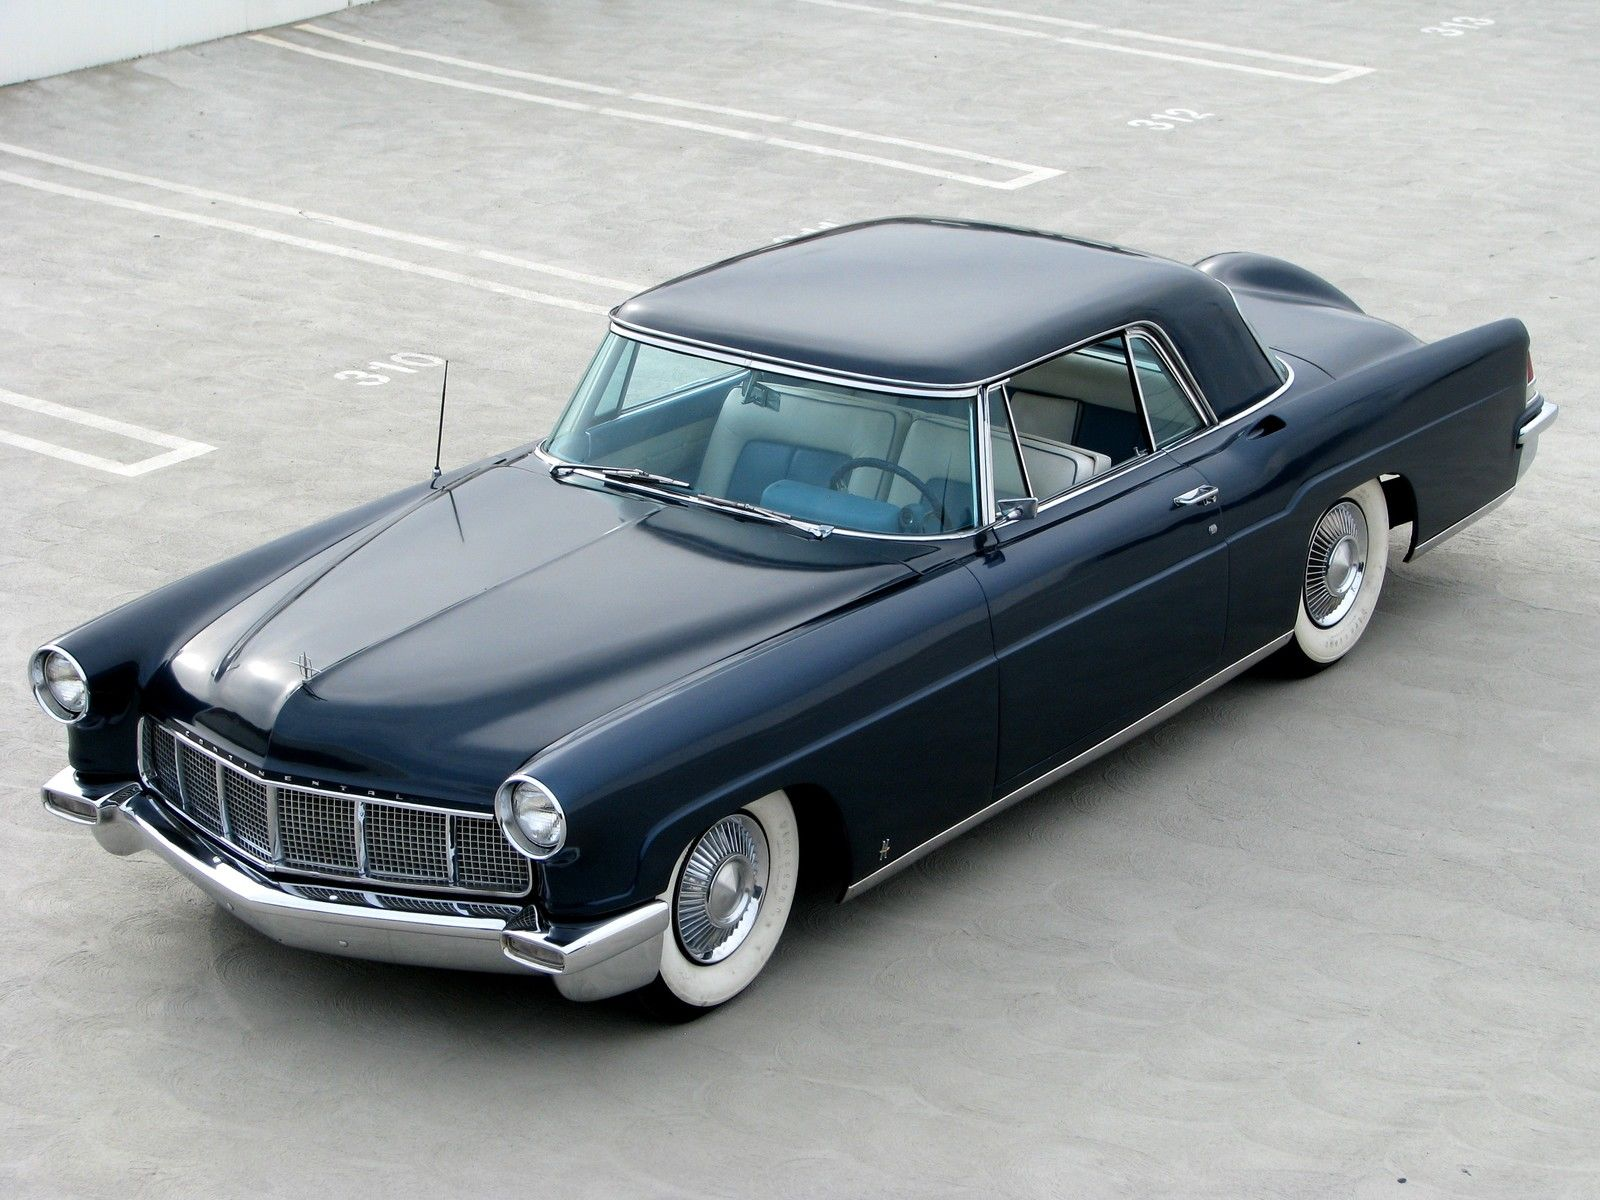 1956 lincoln continental mark ii hardtop with factory air. Black Bedroom Furniture Sets. Home Design Ideas